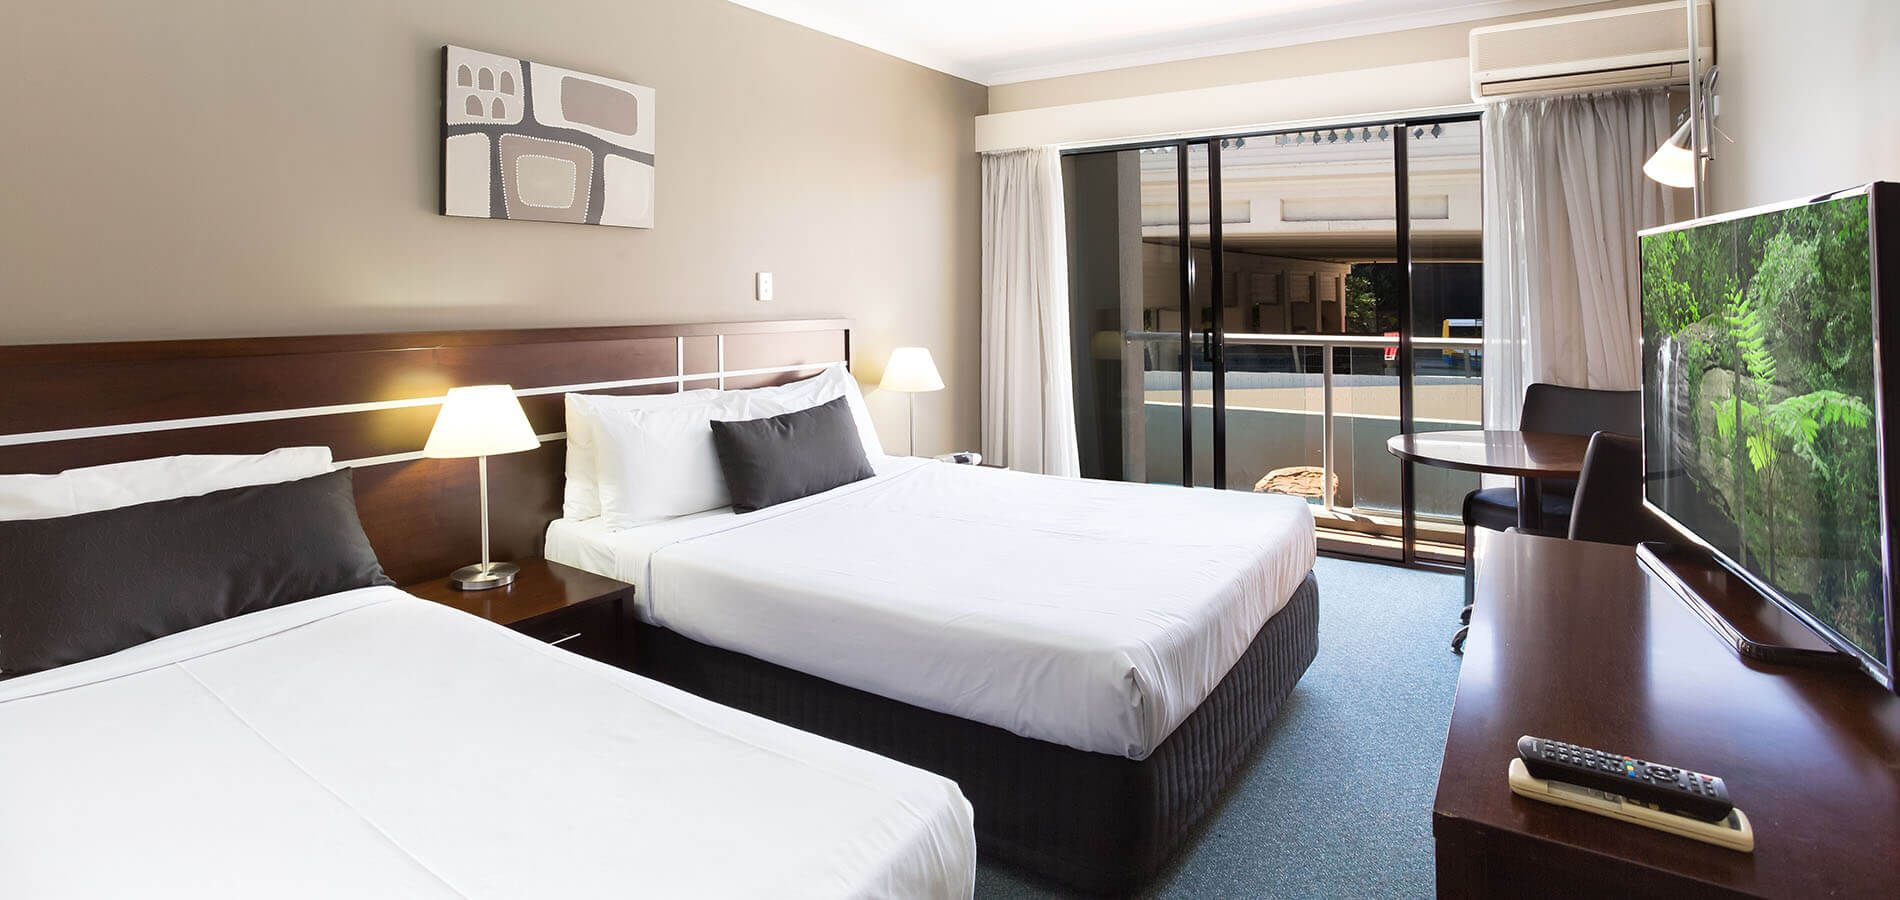 Quality Inn and Suites Extended Stay in Indianapolis IN